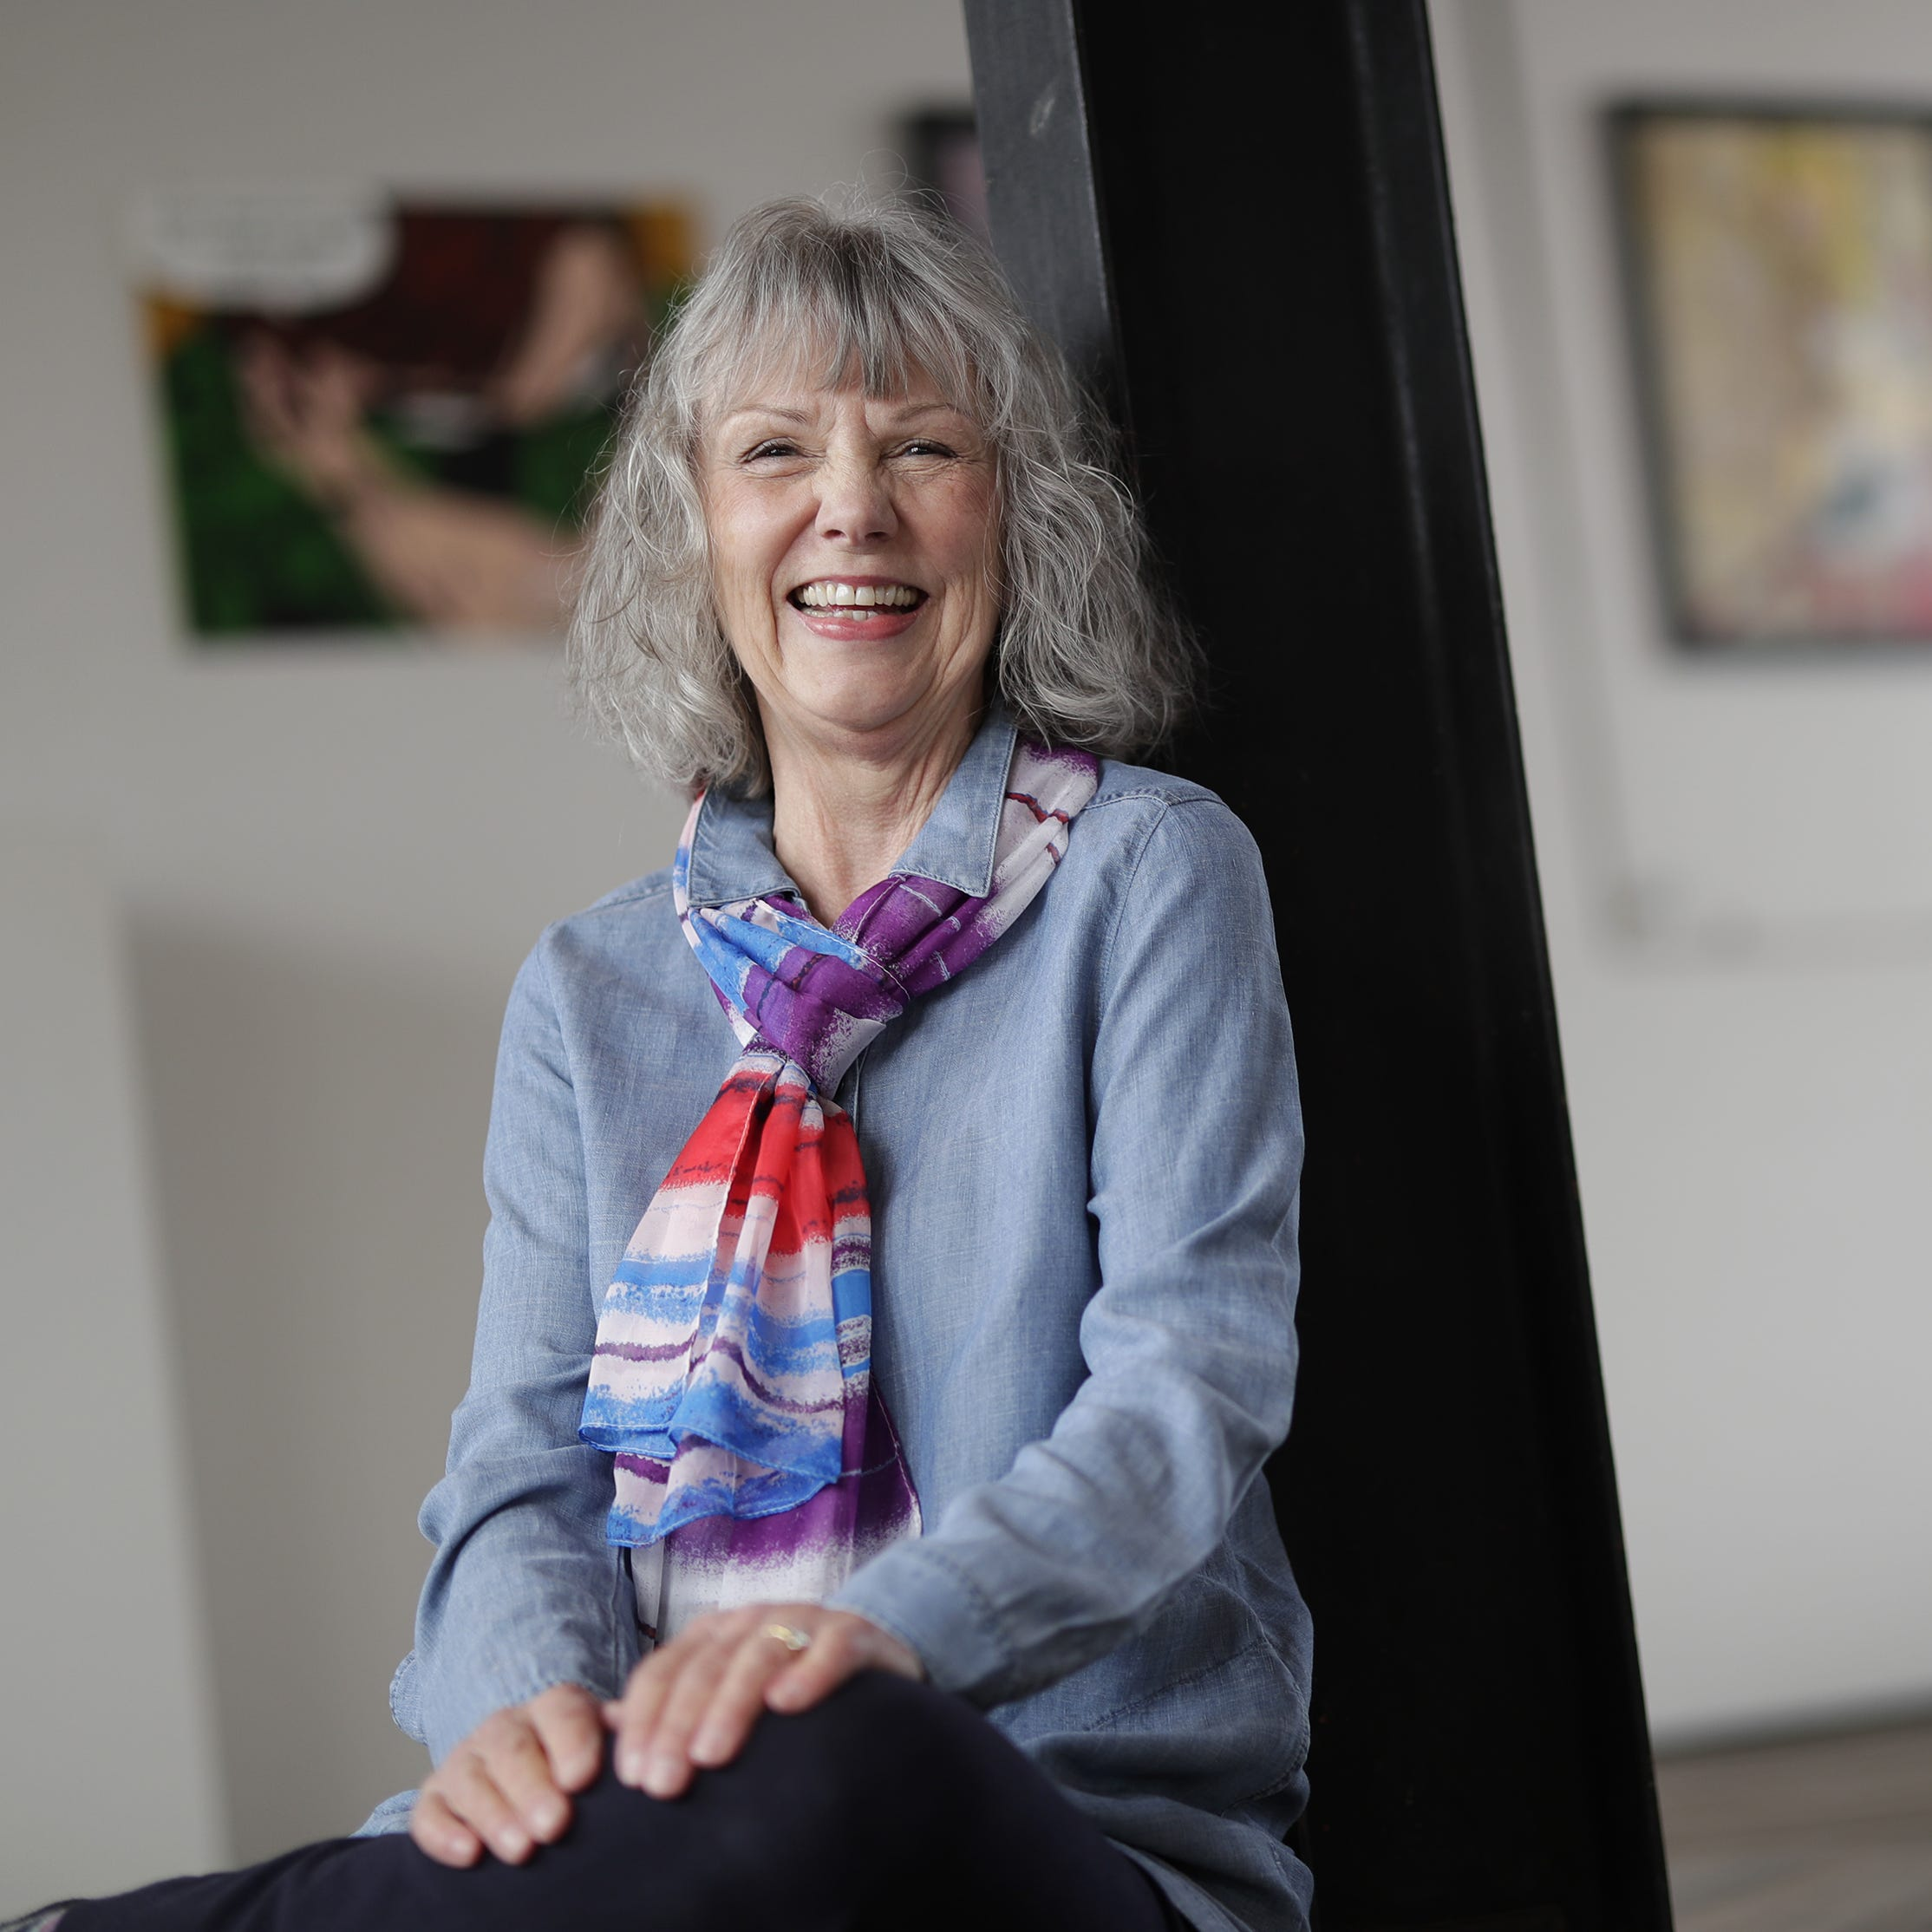 Poet Karla Huston brings 'a sparkling enthusiasm' to arts leadership